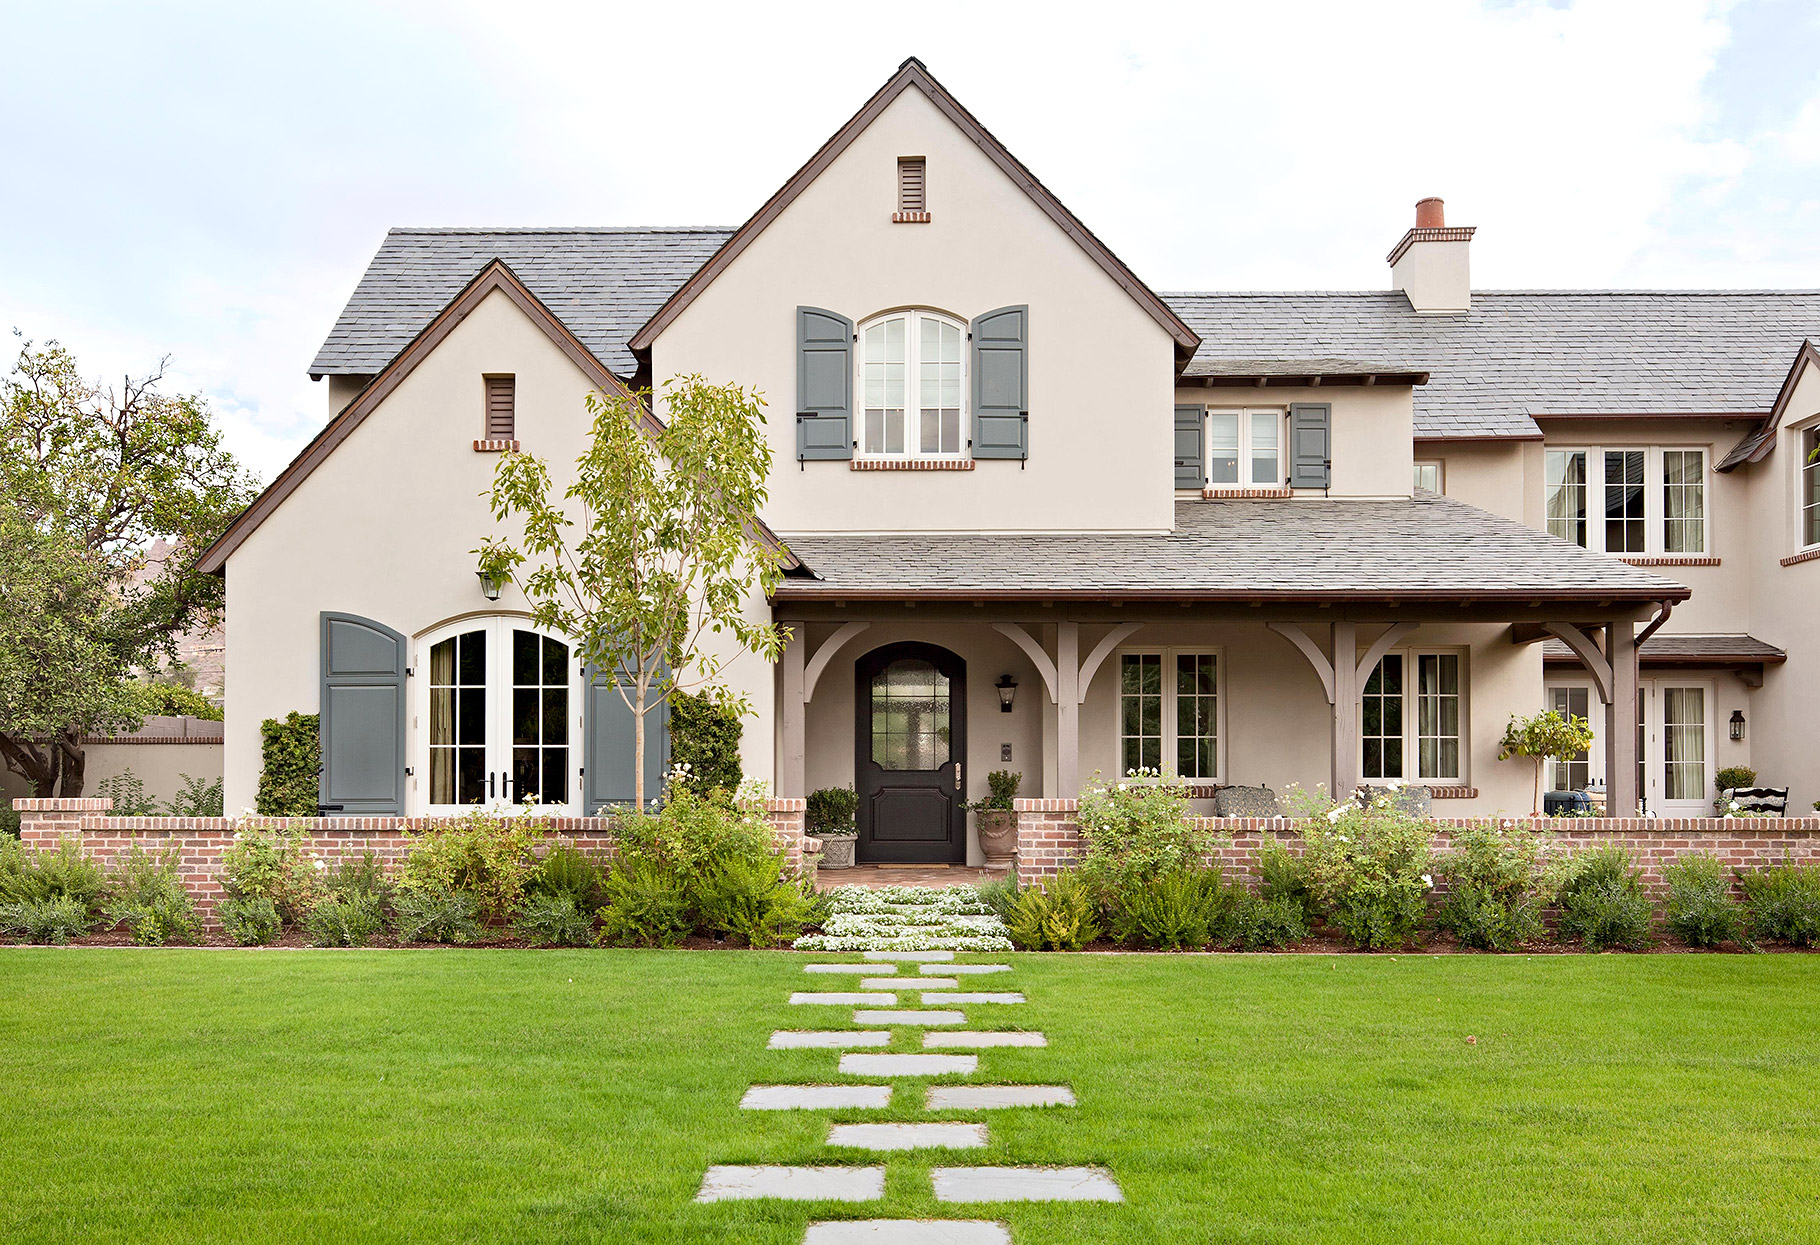 stucco exterior with gray shutters and pavers to door